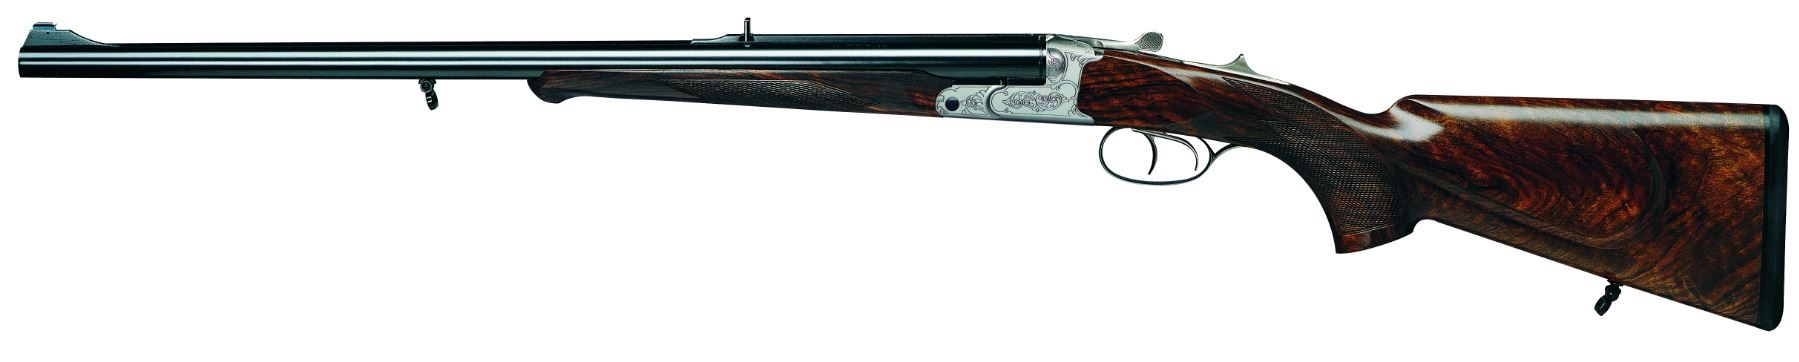 KRIEGHOFF Classic Big Five Double Rifle in .500/416 NE and Hornady Ammunition